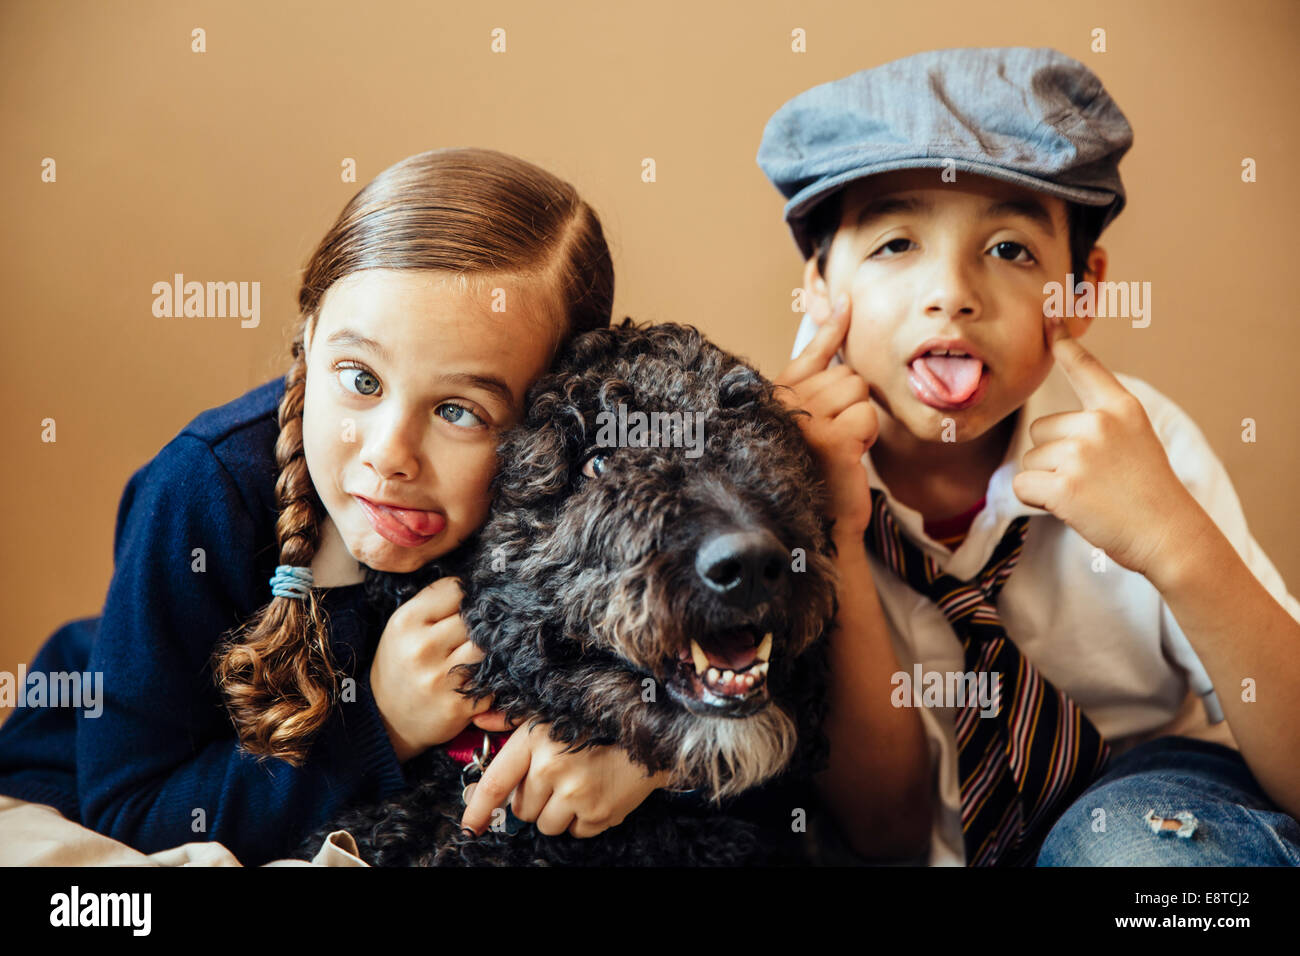 Mixed race children making faces with dog Stock Photo